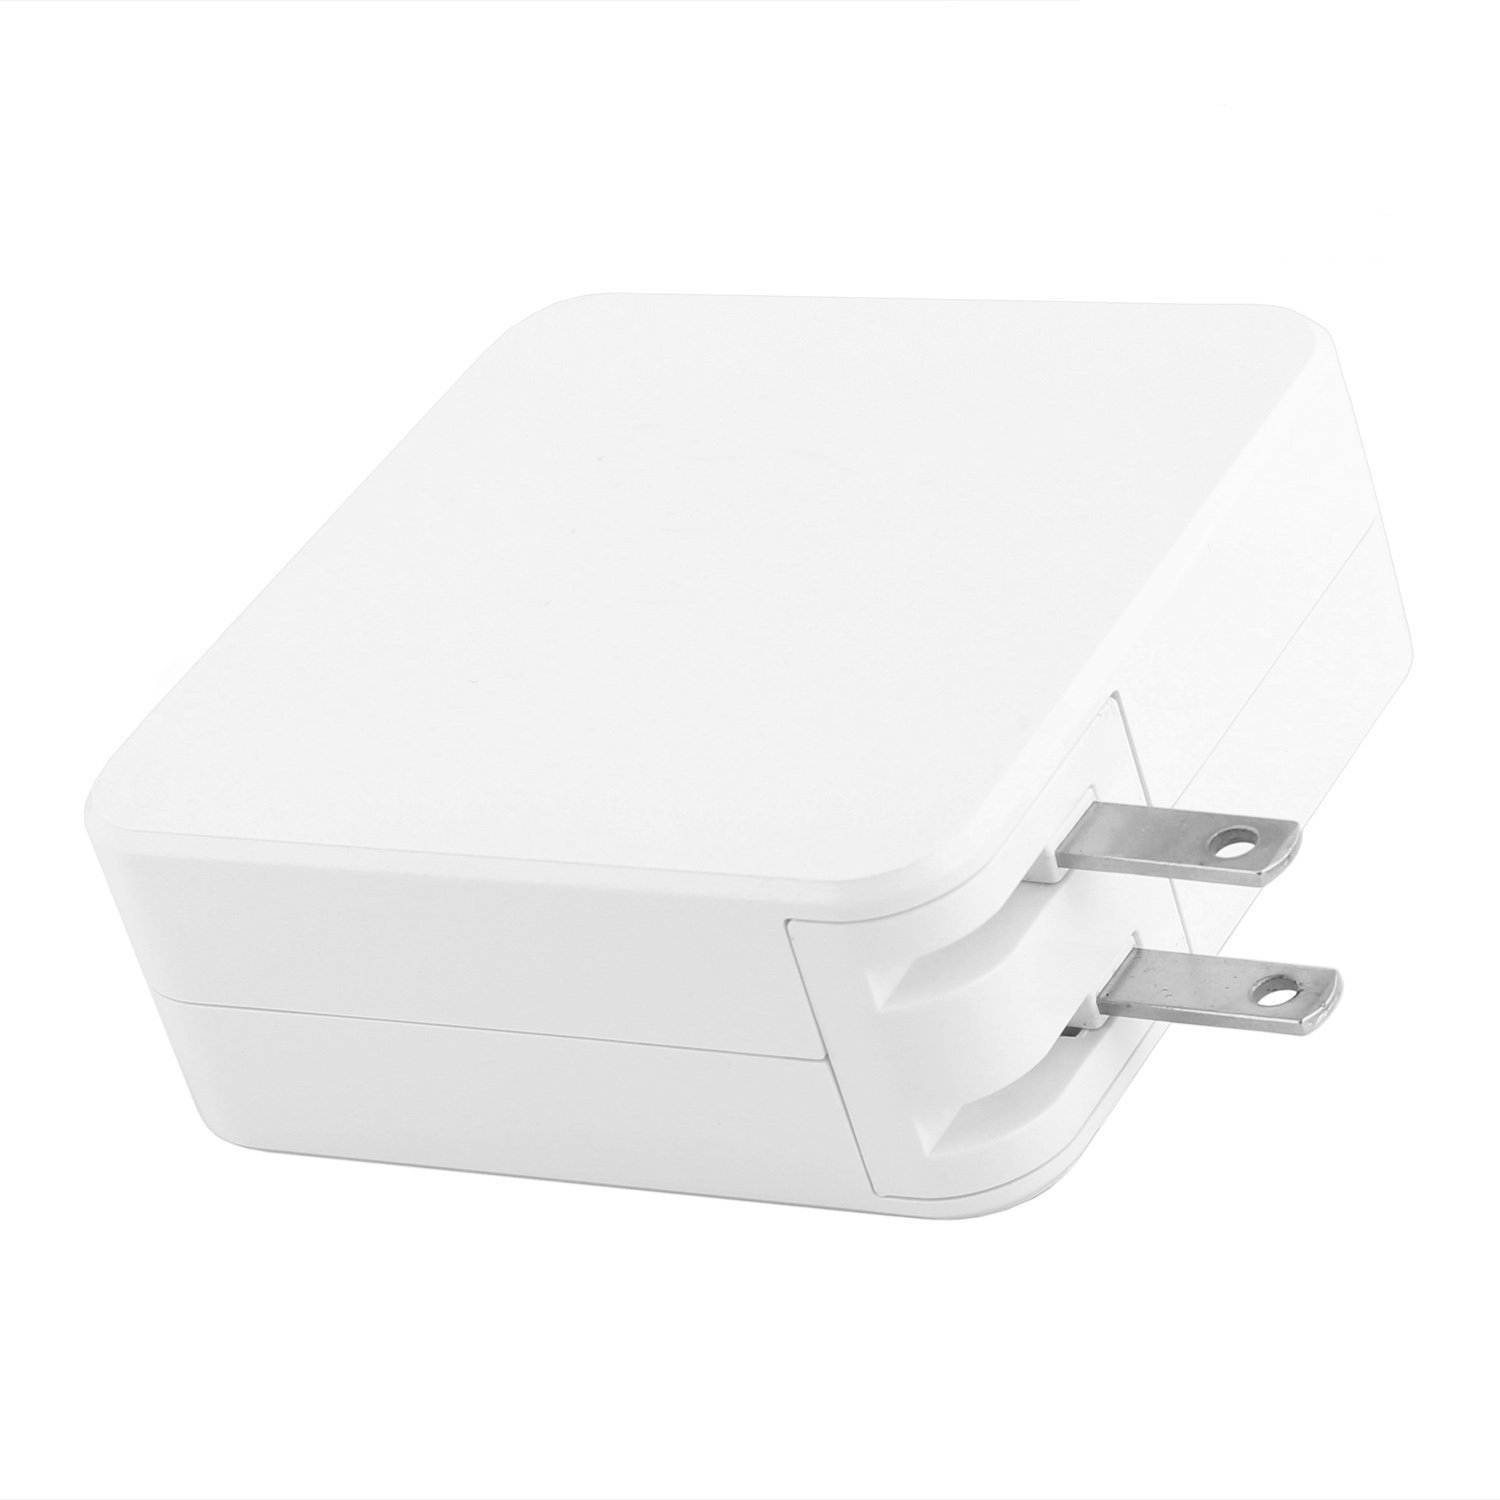 Macbook Pro Chargerkuppet Replacement Chargerl Tip 60w Adaptor Charger Magsafe Power Adapter For Apple 13 A1181 A1184 A1278 A1330 A1344 And Inch Probefore Mid